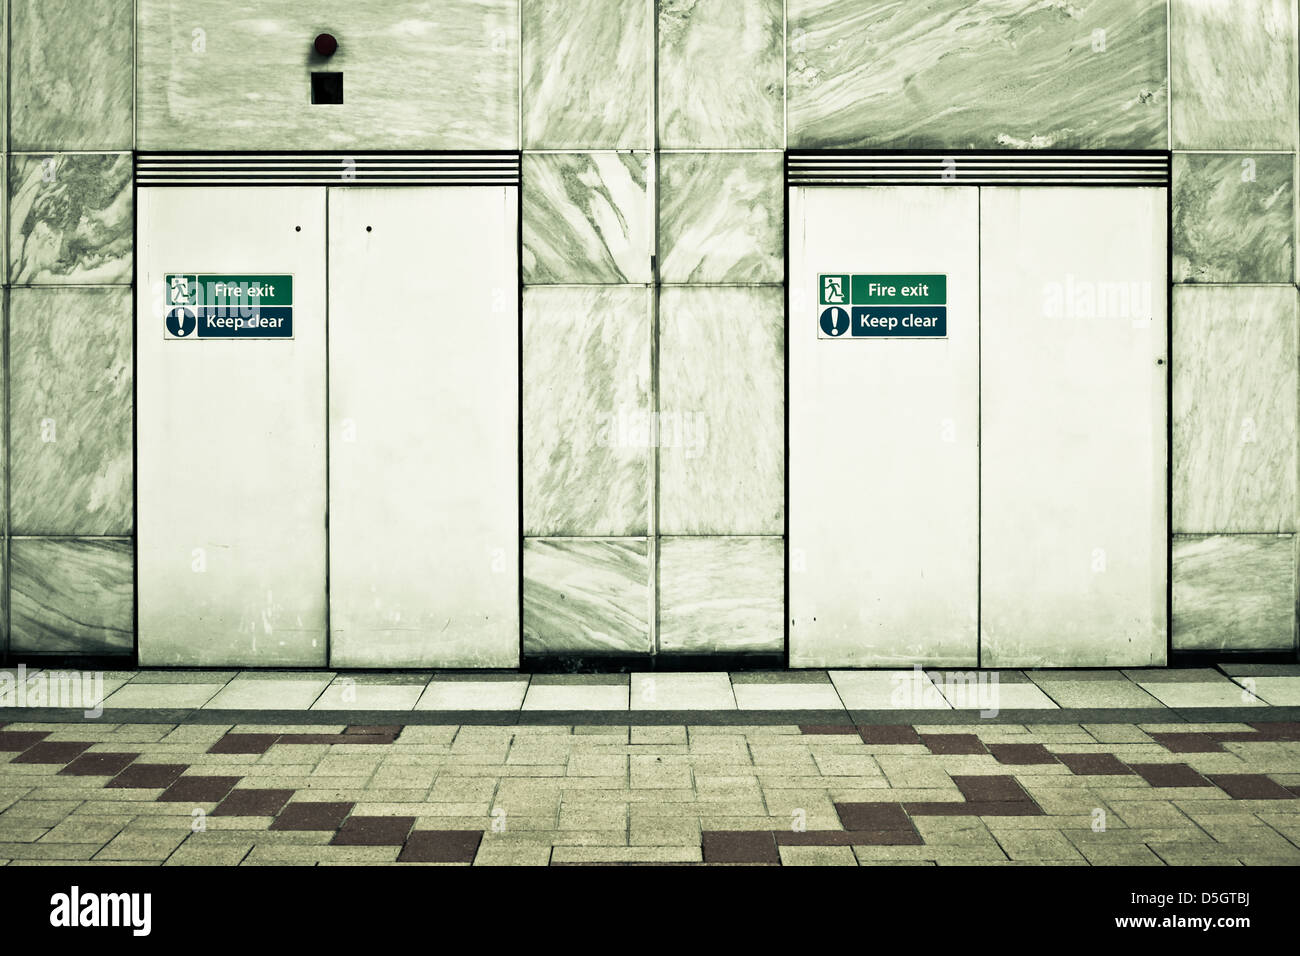 Two fire exit doors in a modern urban building Stock Photo